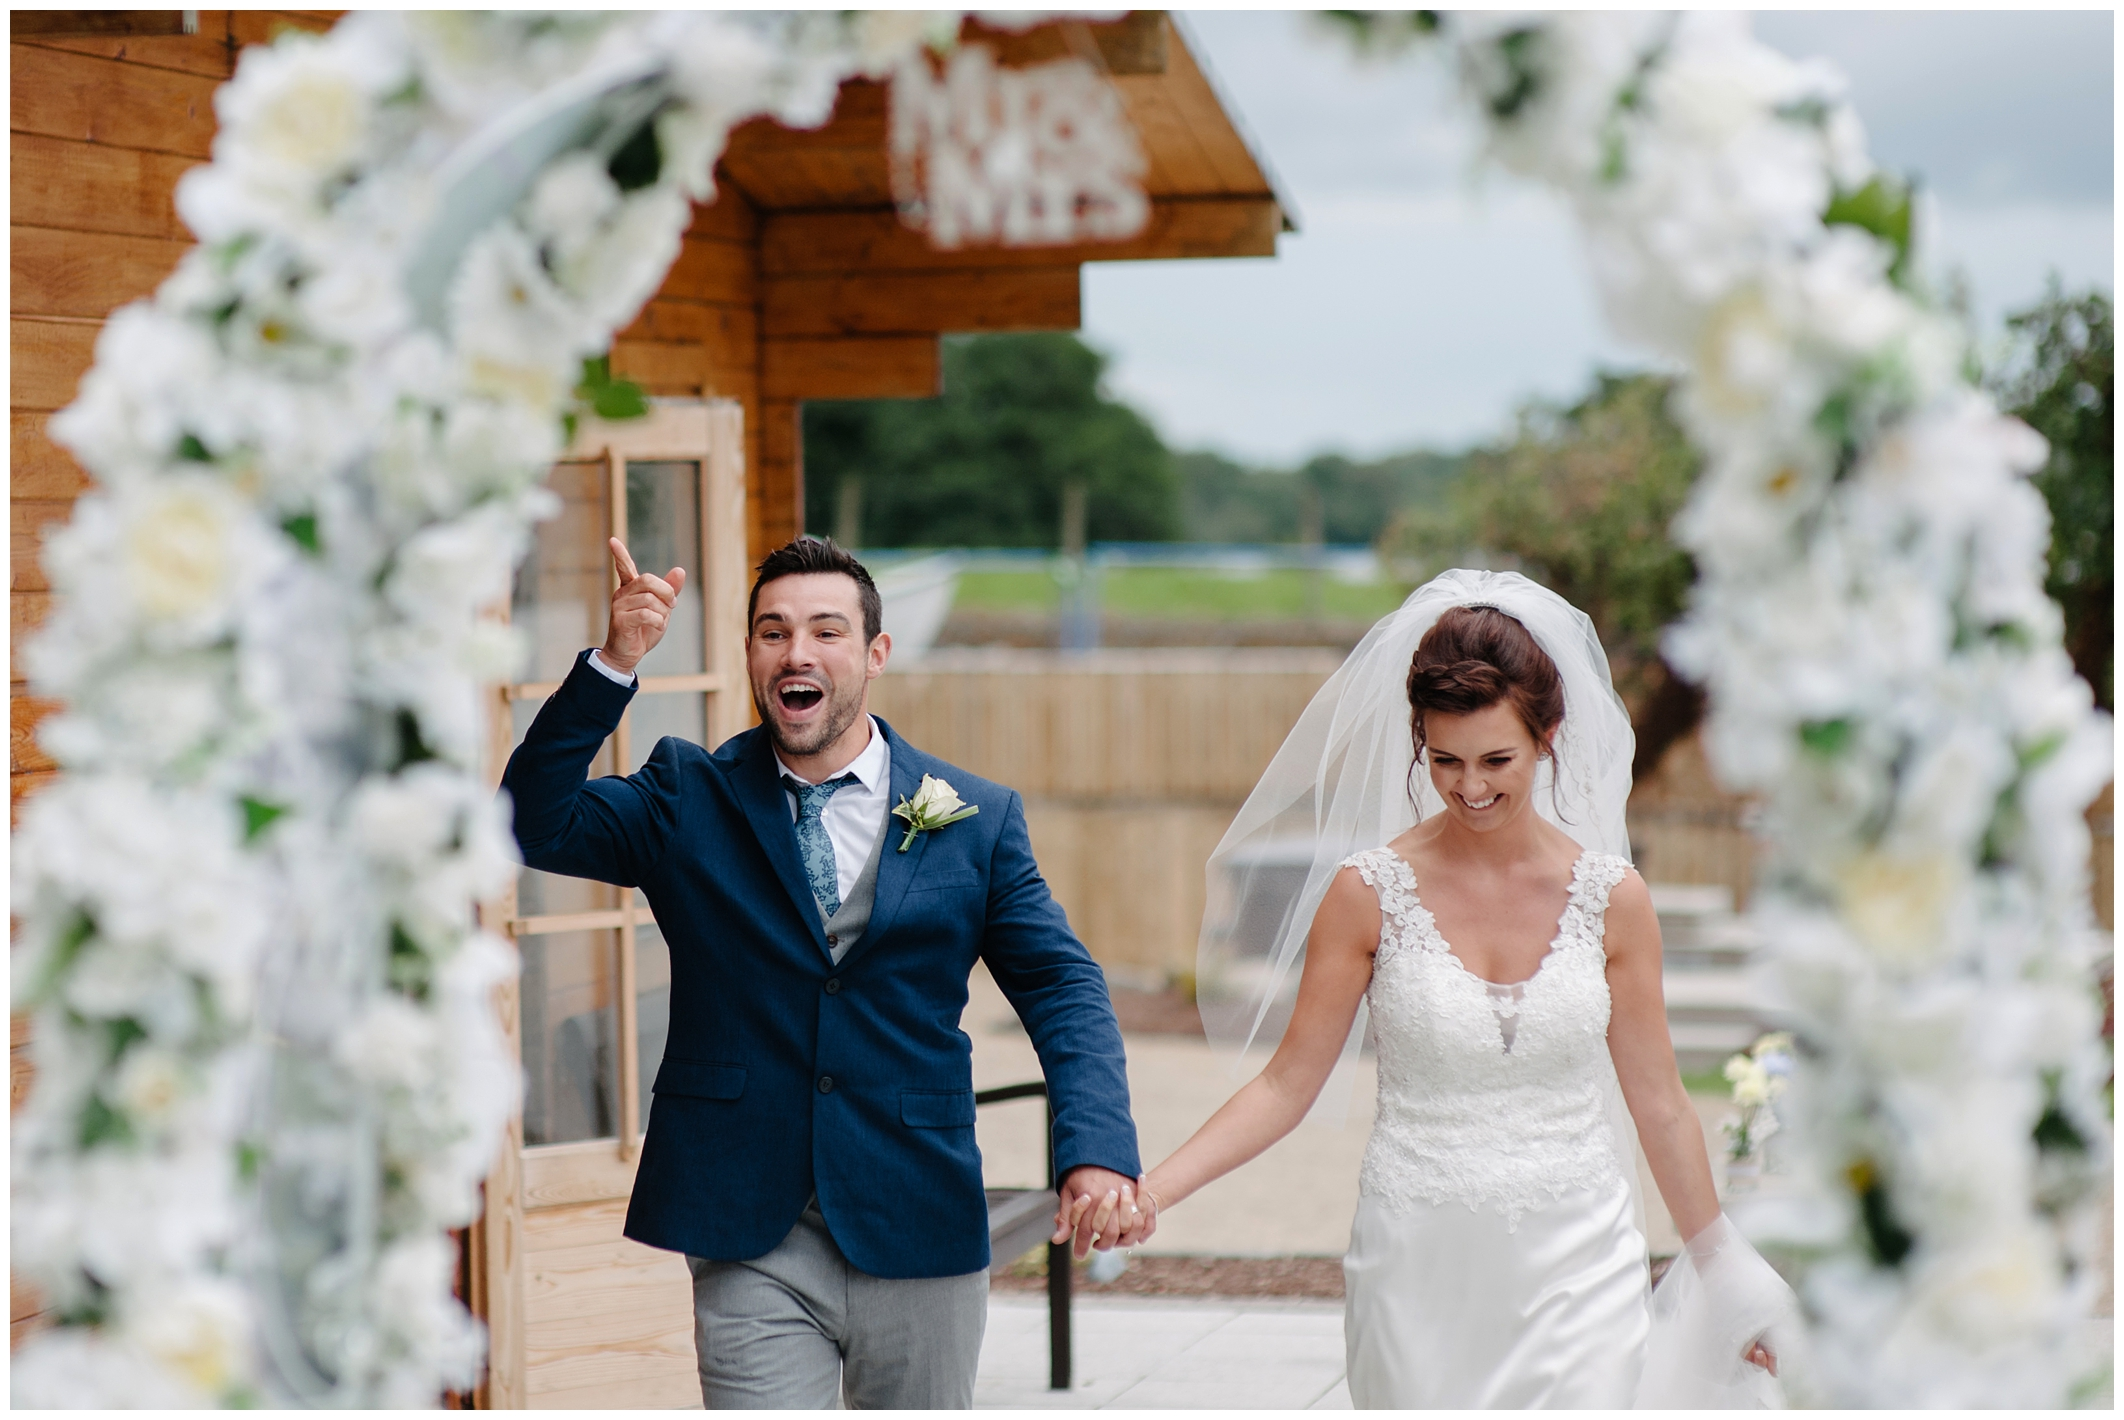 Lynsey_Andy_Rossharbour_Fermanagh_wedding_jude_browne_photography_0129.jpg